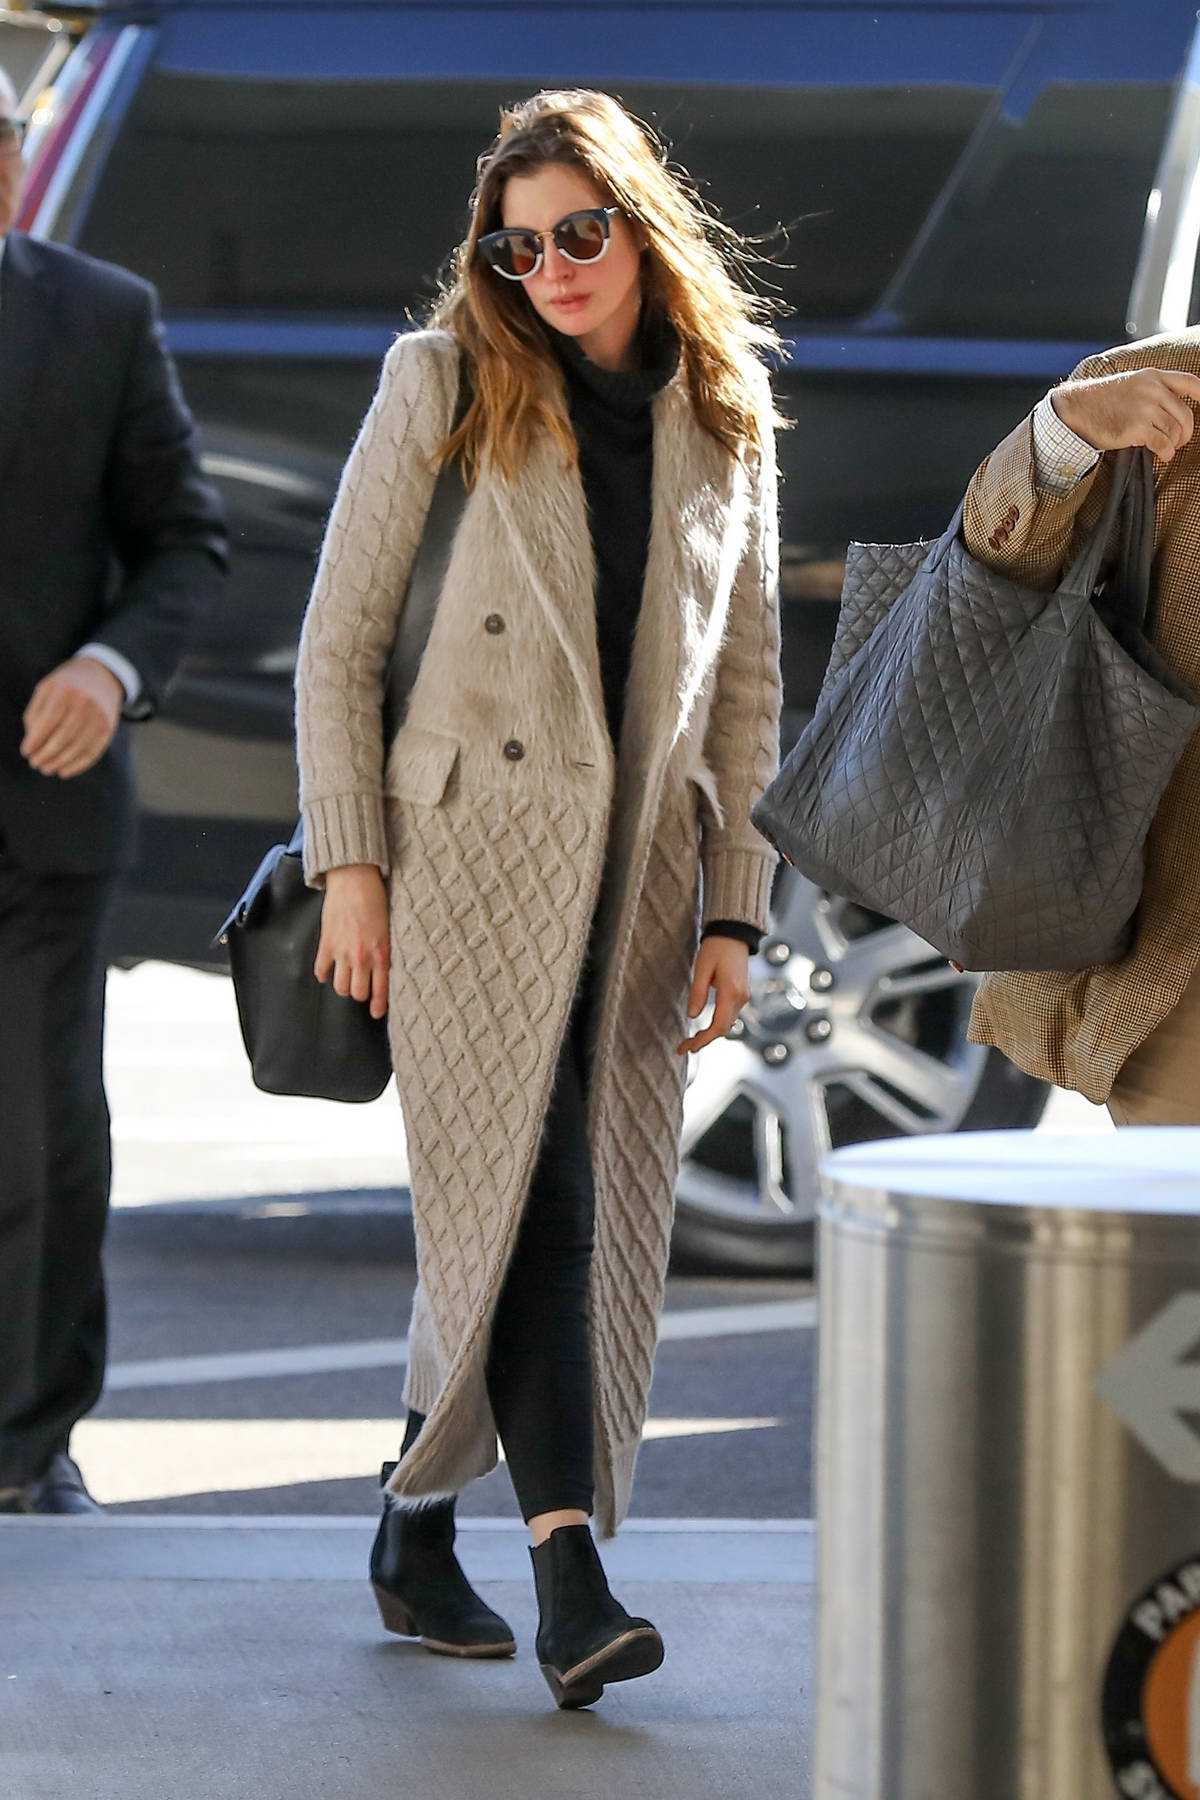 Anne Hathaway wears a knit trench coat while arriving at LAX airport, Los Angeles